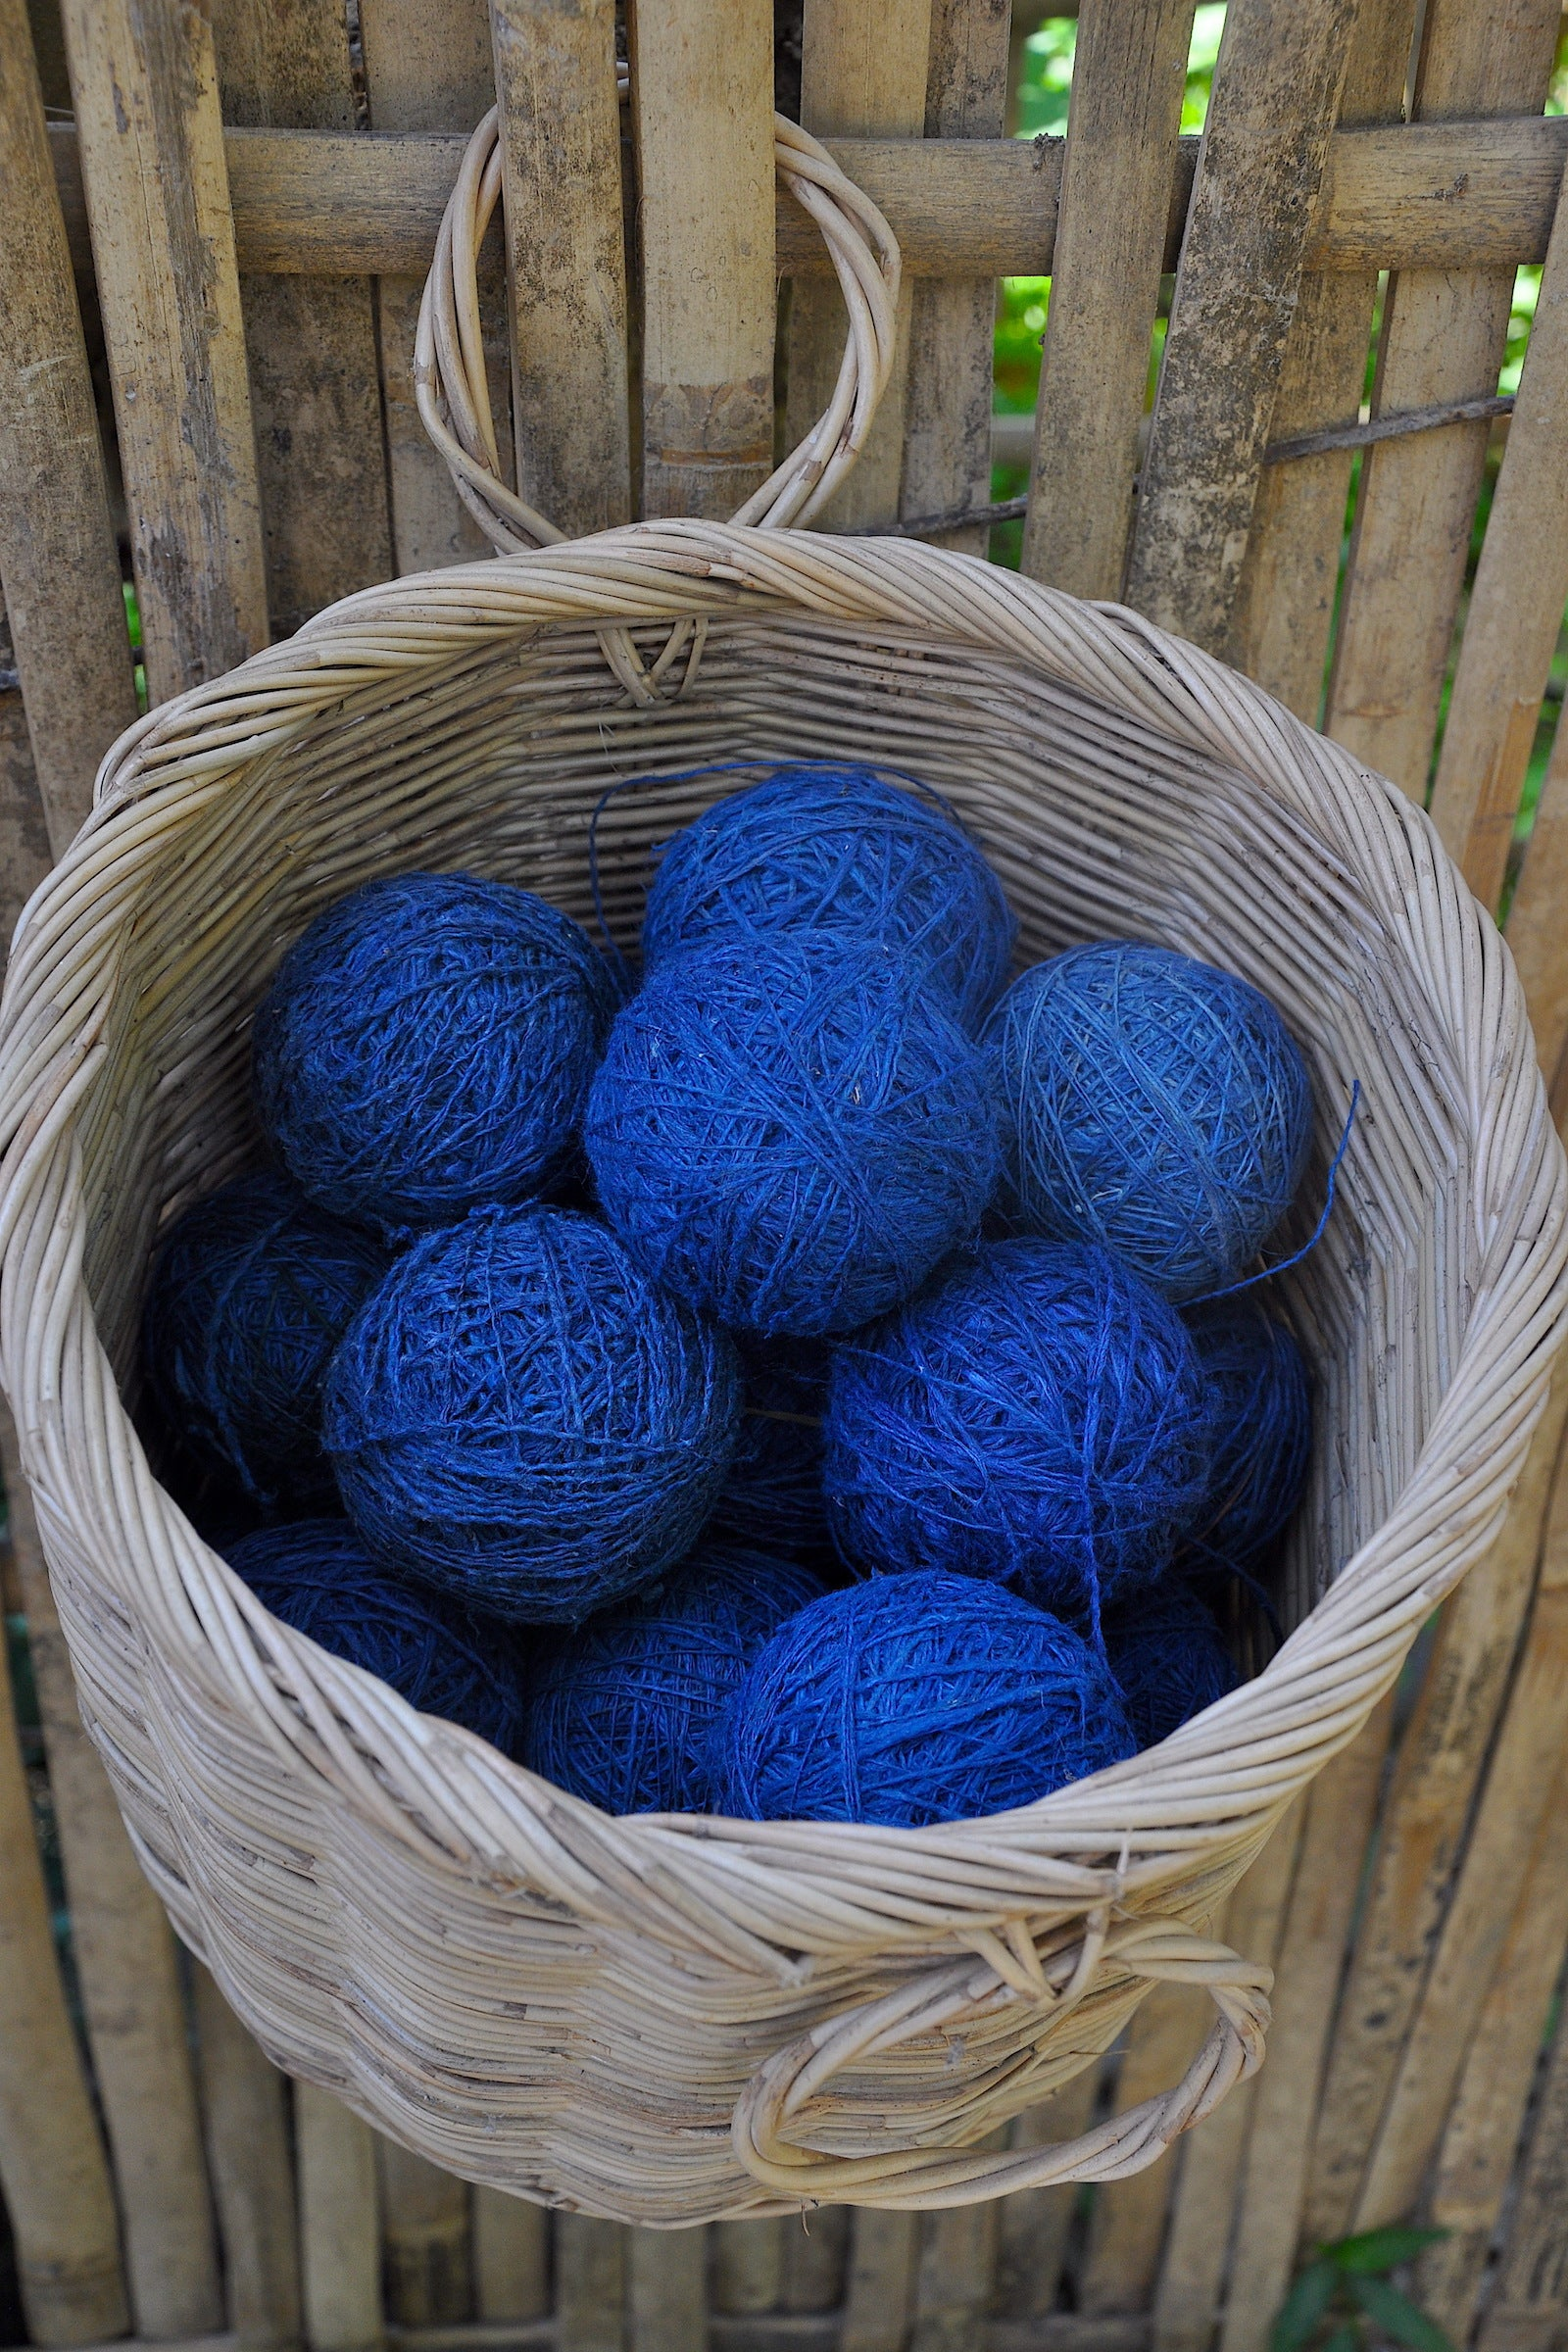 Indigo Dyed Handmade Hemp Yarn Roll